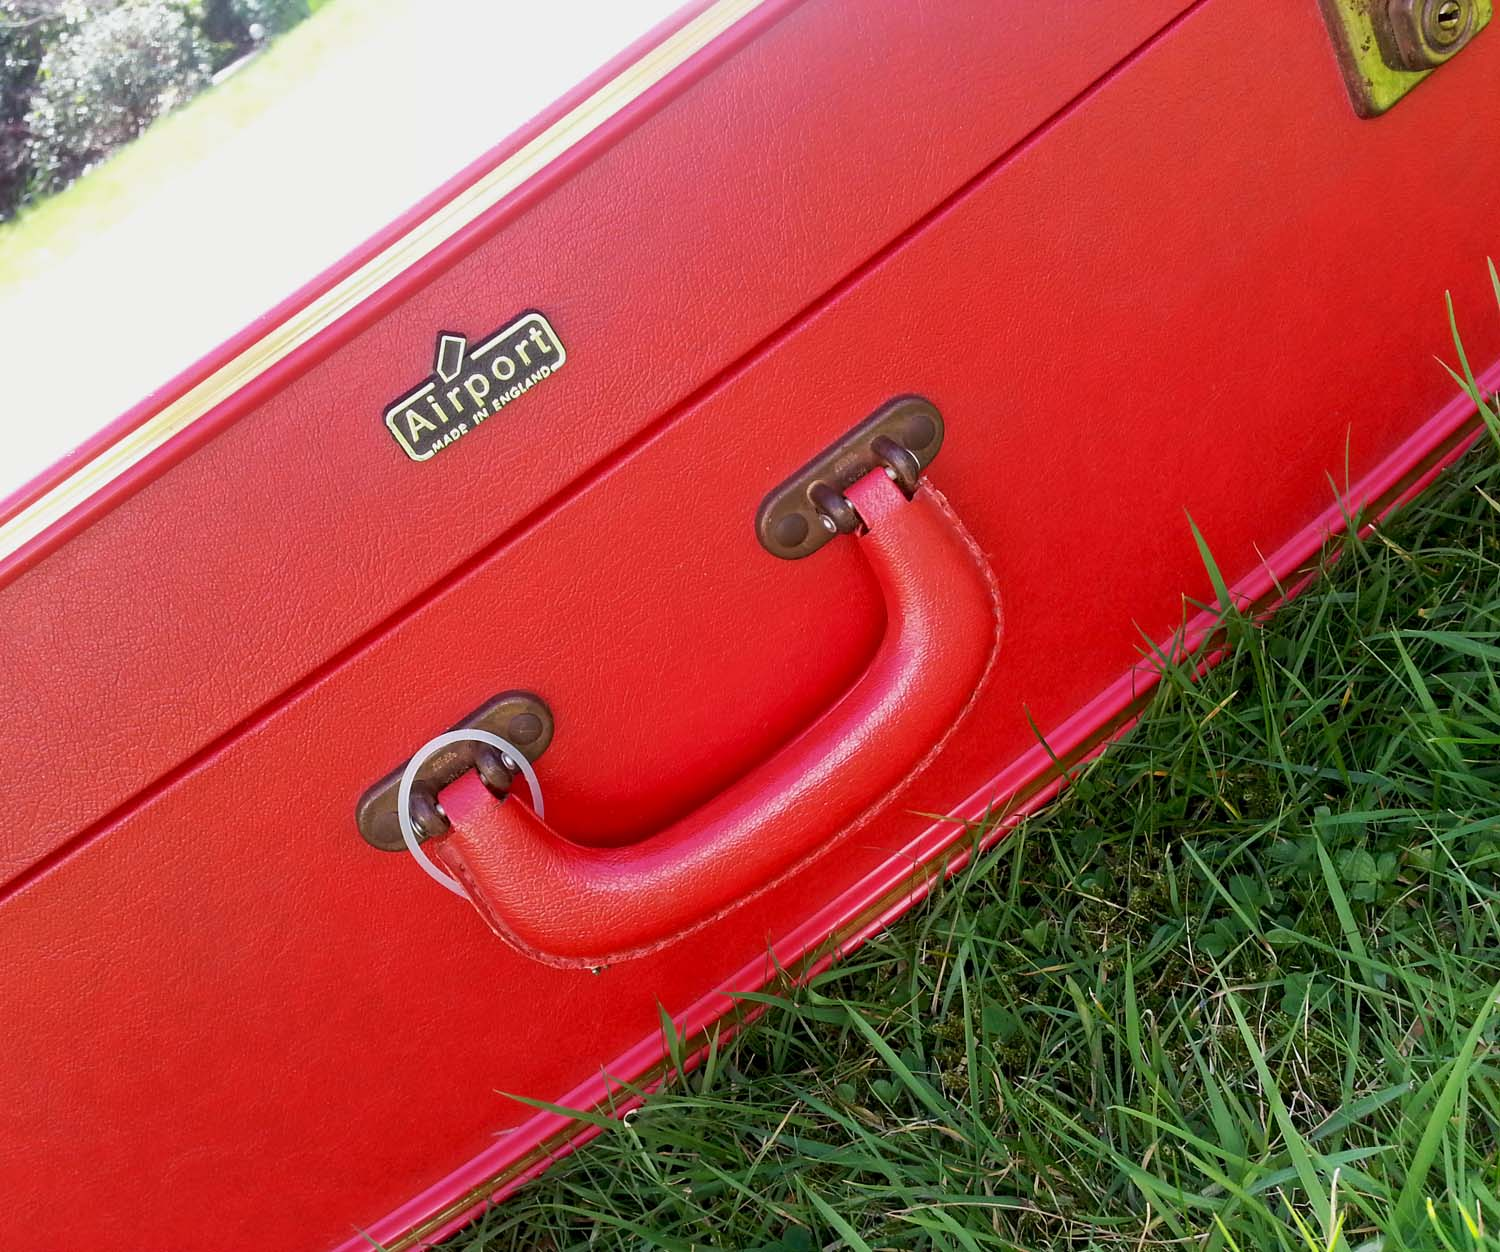 Vintage Red 'Airport' Suitcase